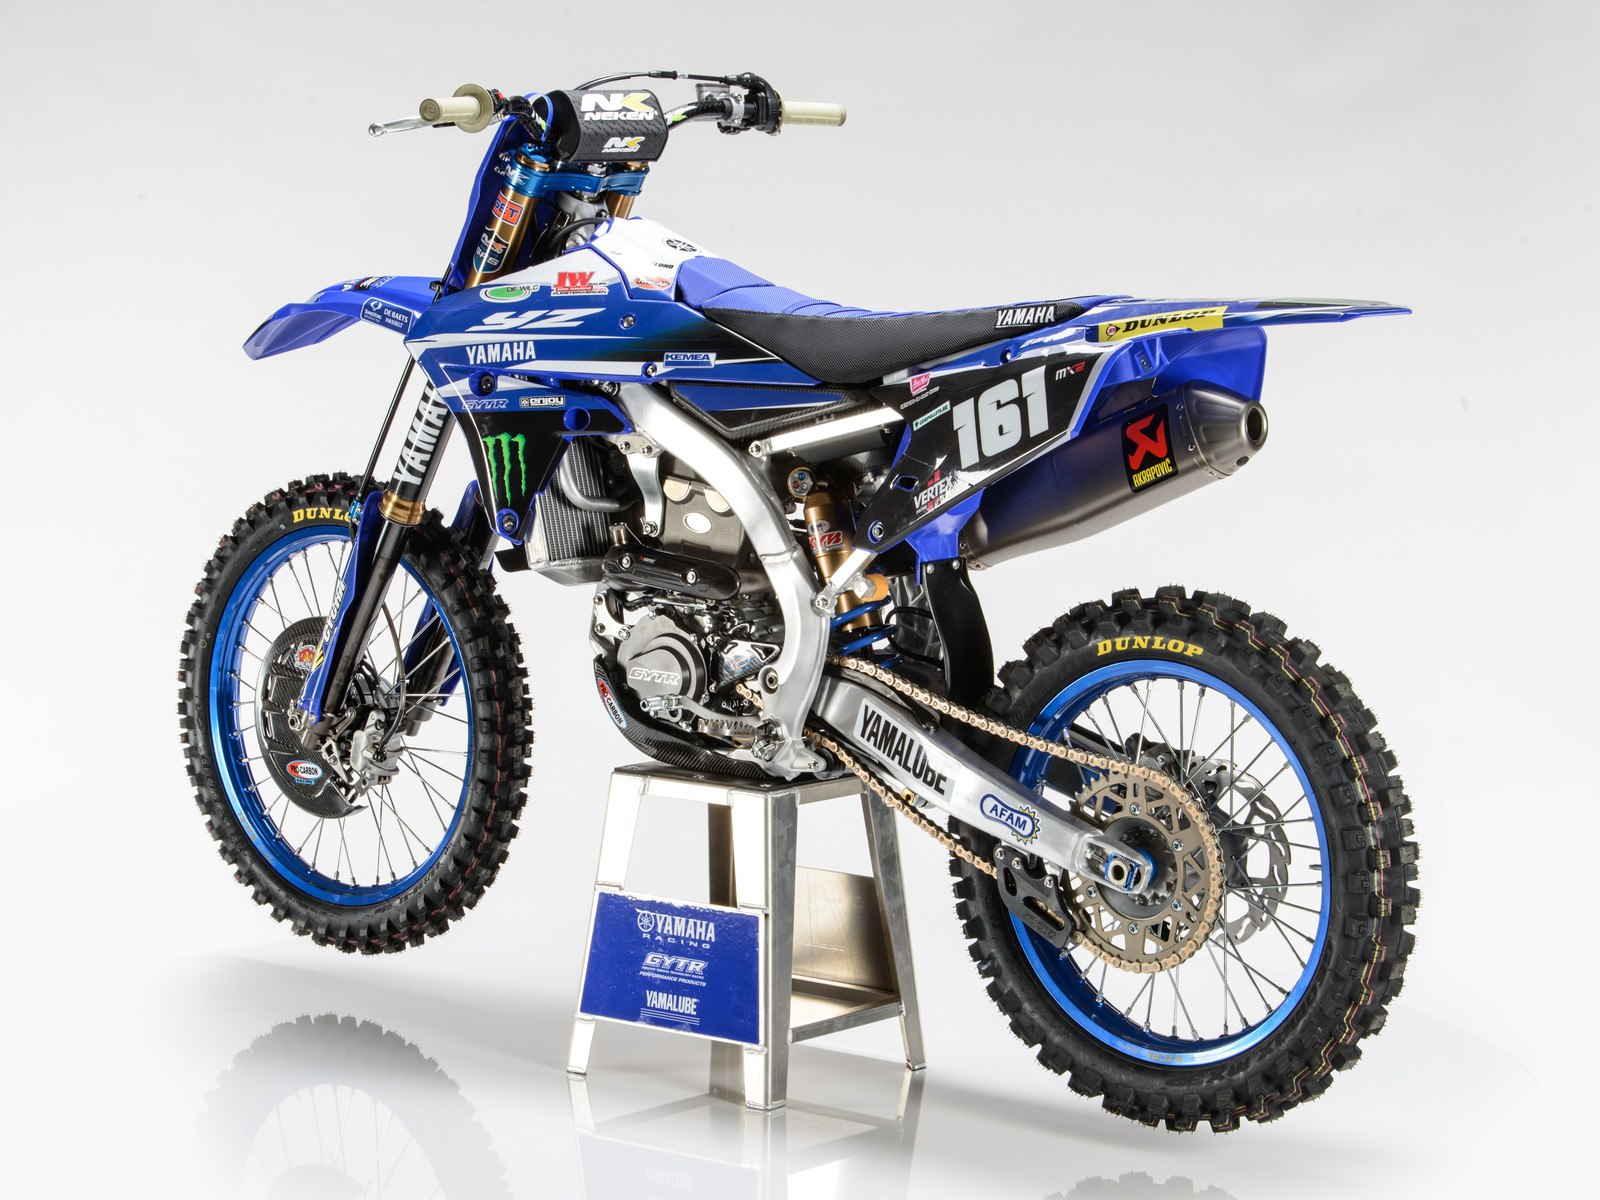 Alvin Östlund's 2017 Kemea Yamaha Factory MX2 YZ250F - First Look: 2017 Kemea Yamaha Factory MX2 - Motocross Pictures - Vital MX